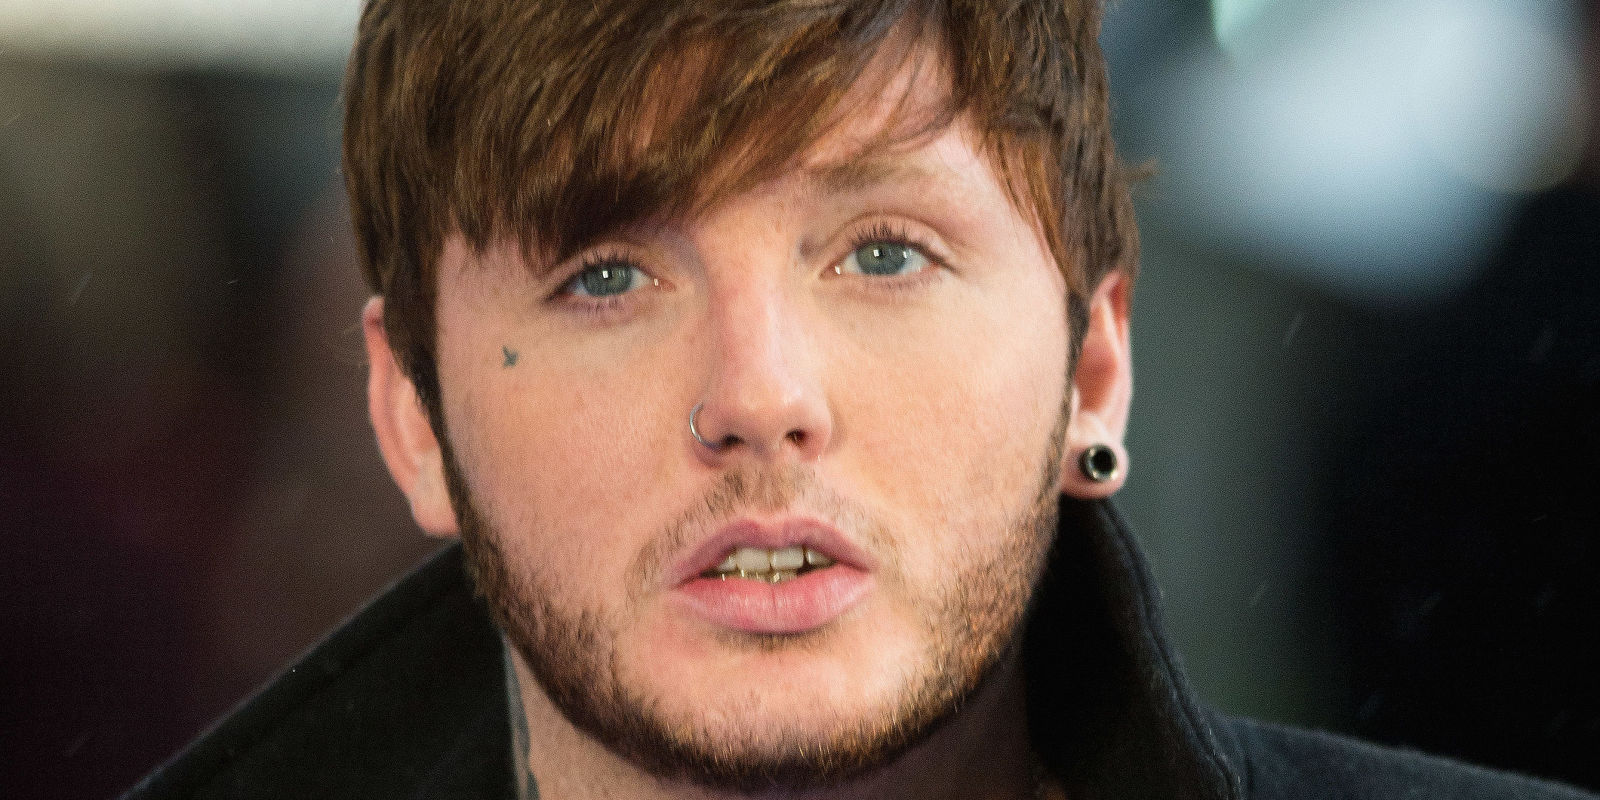 James Arthur shows off new style, face tattoo at X-Men